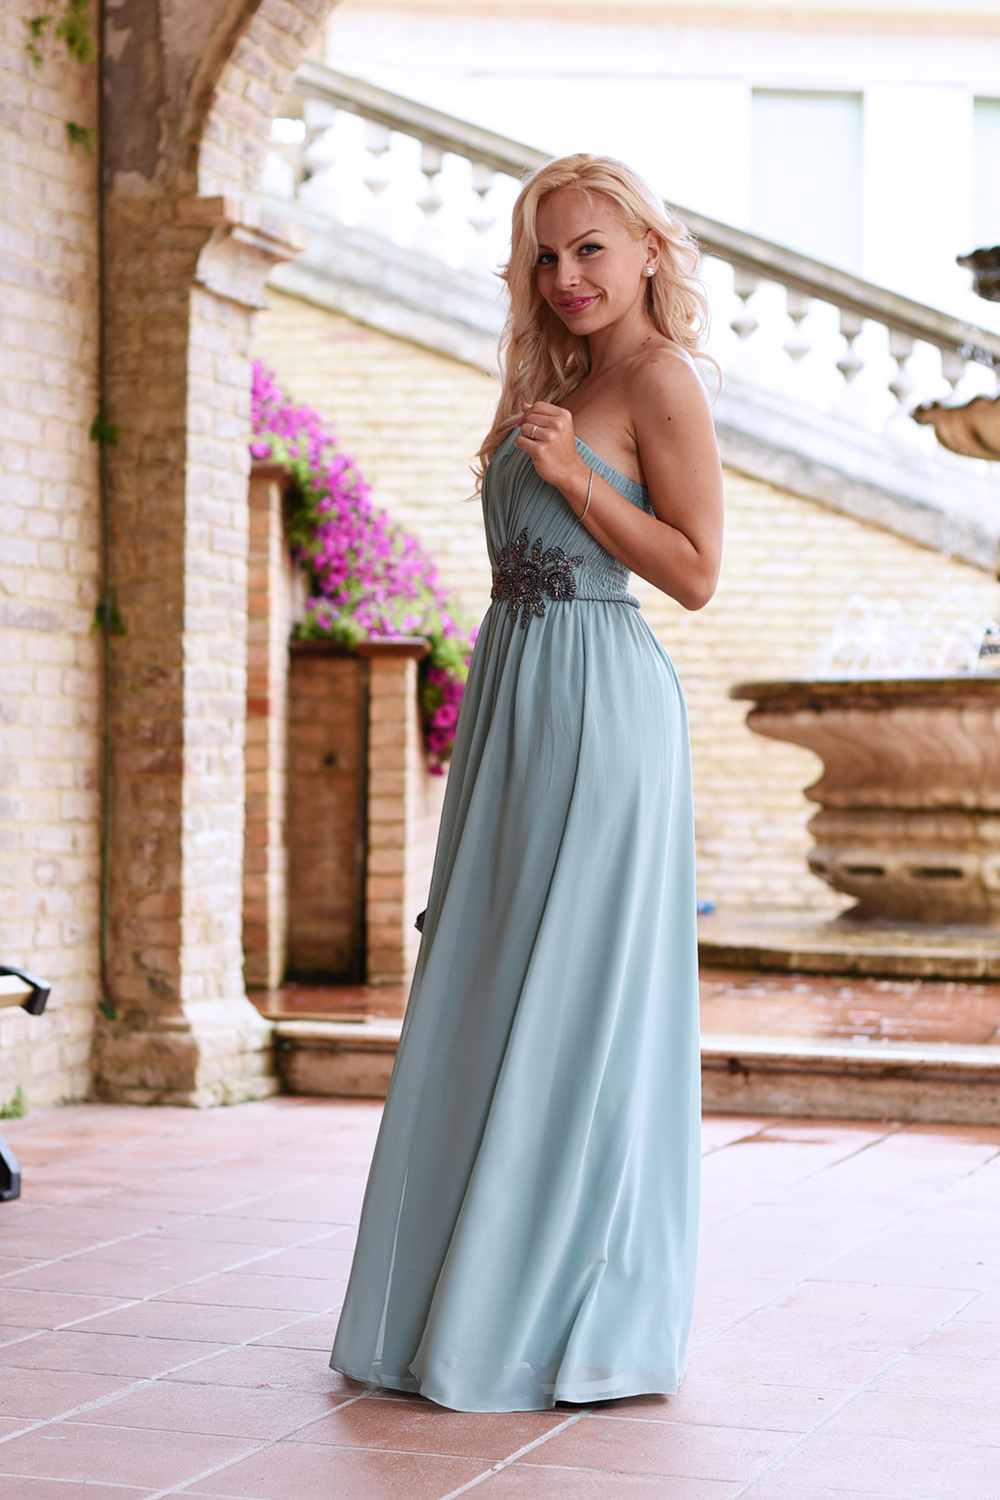 Little Mistress, abiti da cerimonia, come vestirsi ad un matrimonio, party dresses Asos, abiti lunghi per invitate al matrimonio, regole look matrimonio, cosa non indossare ad un matrimonio - outfit fashion blogger It-Girl by Eleonora Petrella